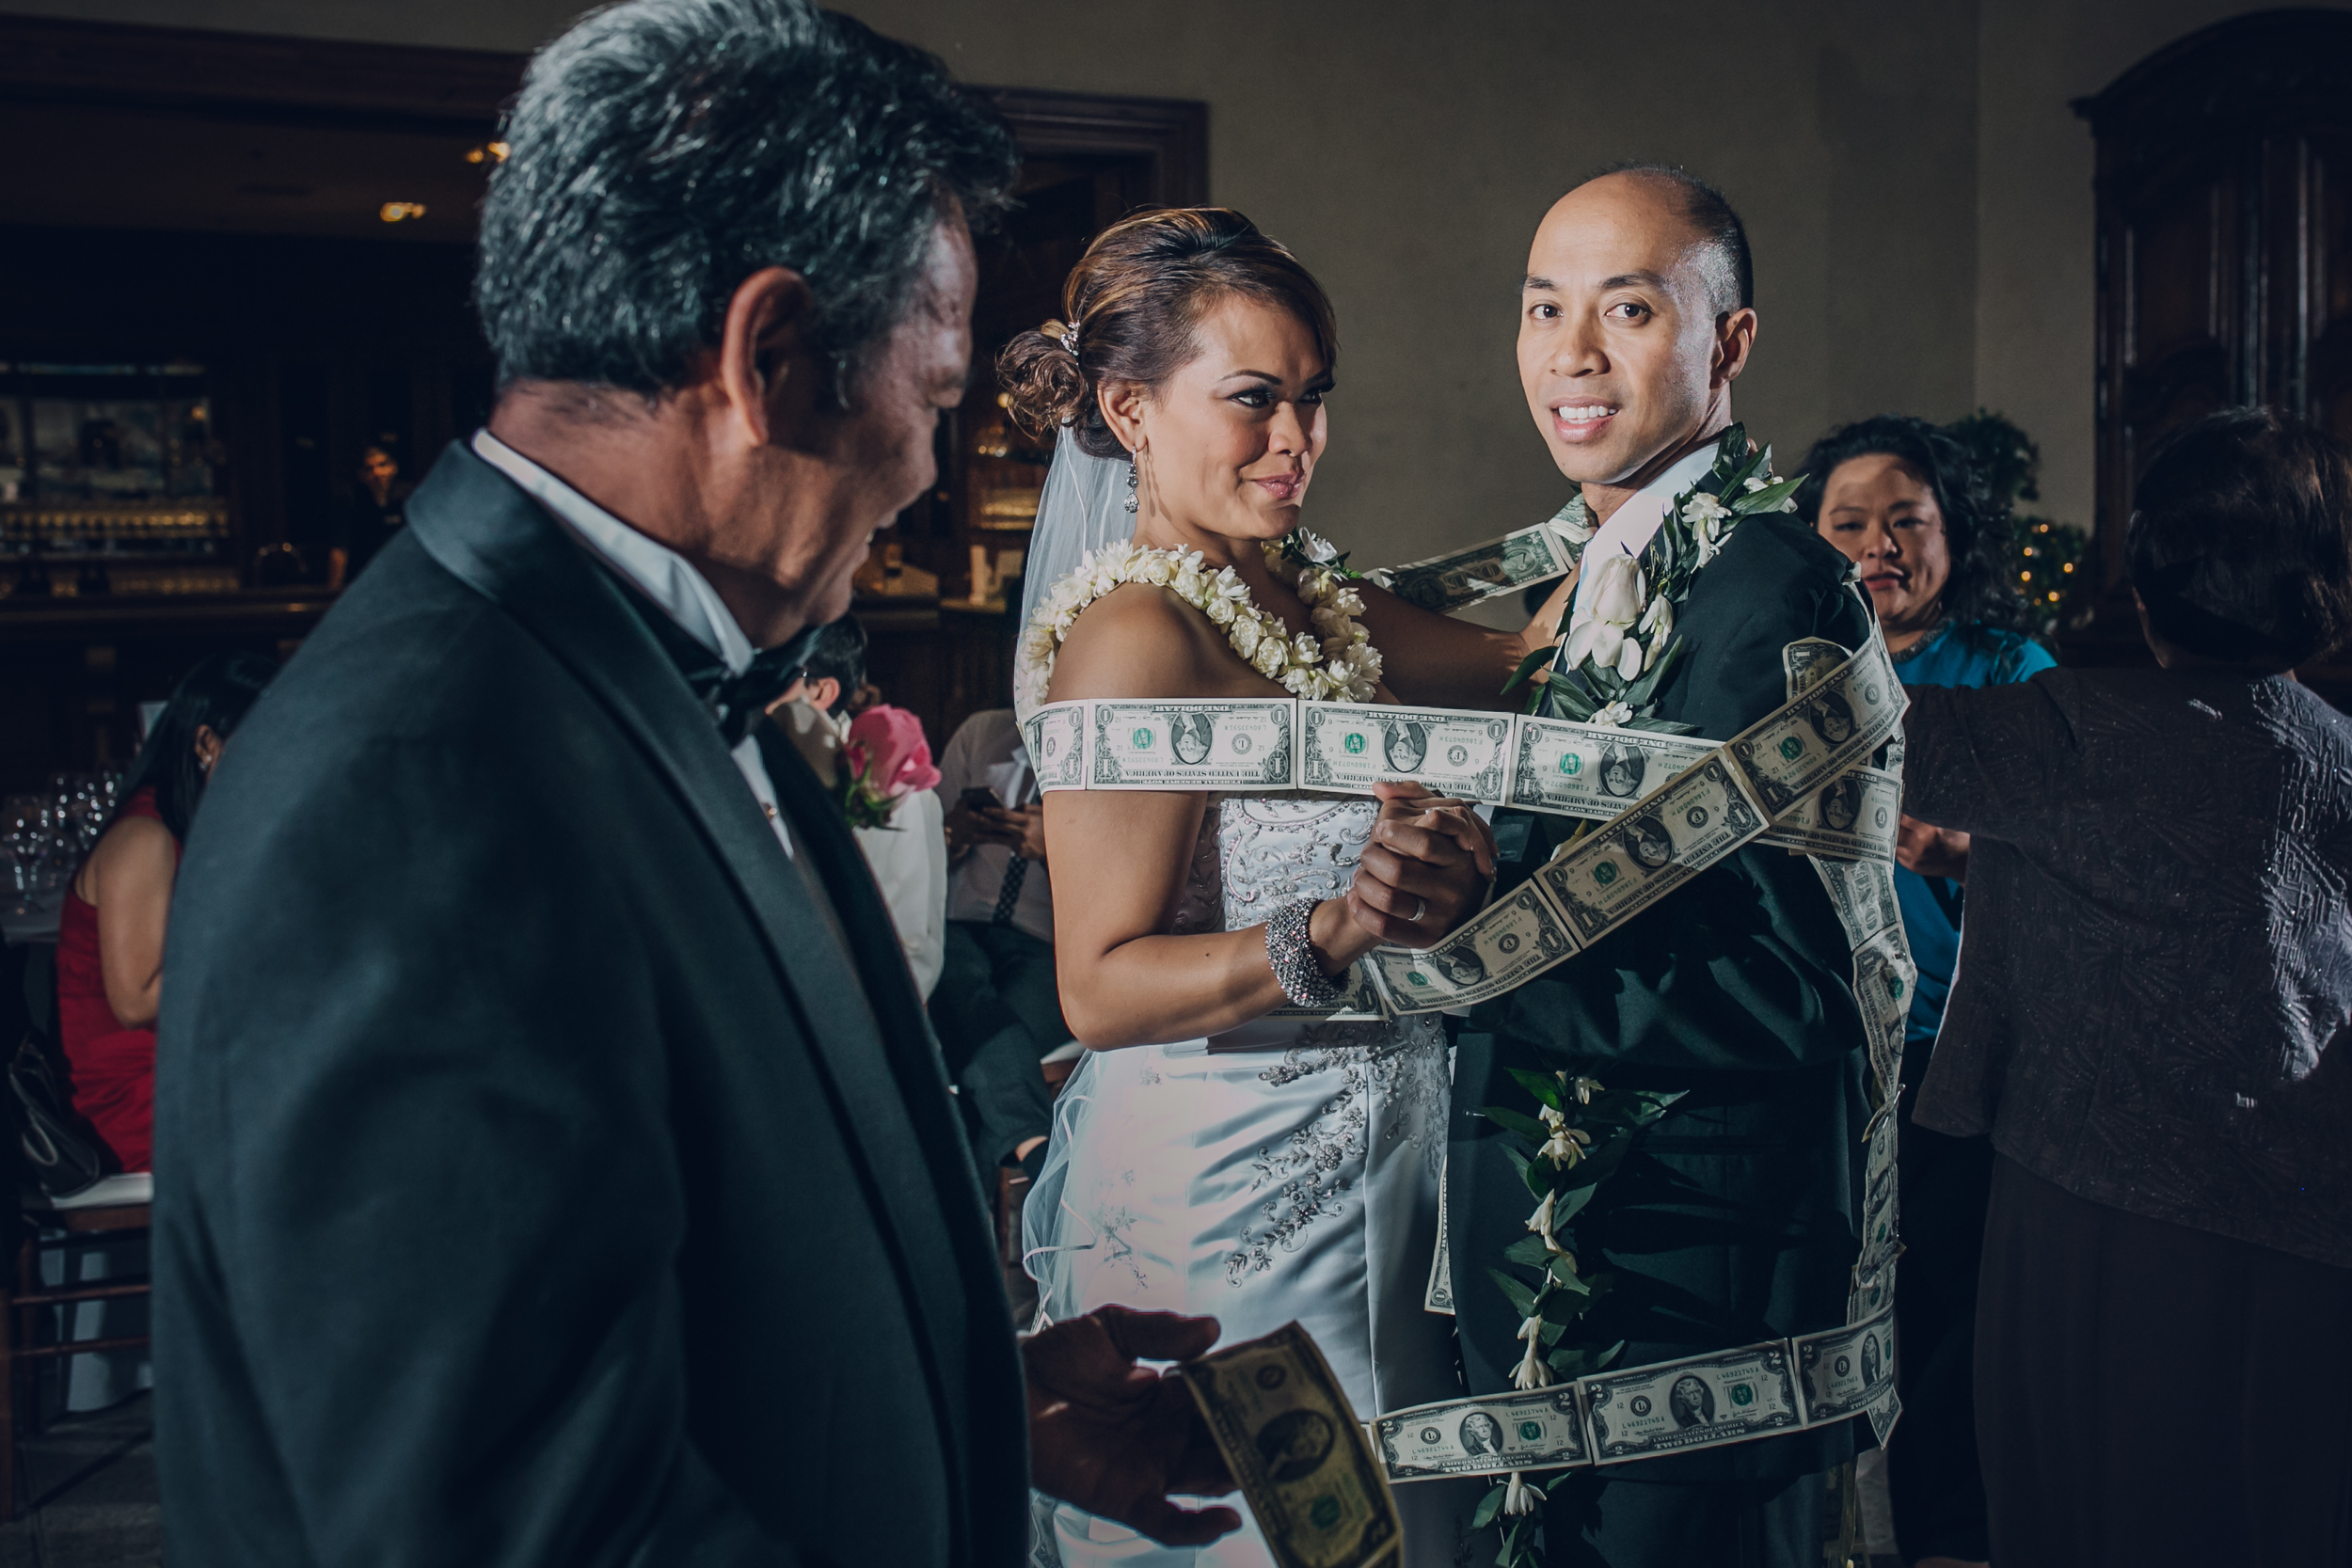 Shiela + Lester's Wedding 9-30-15 1315.jpg